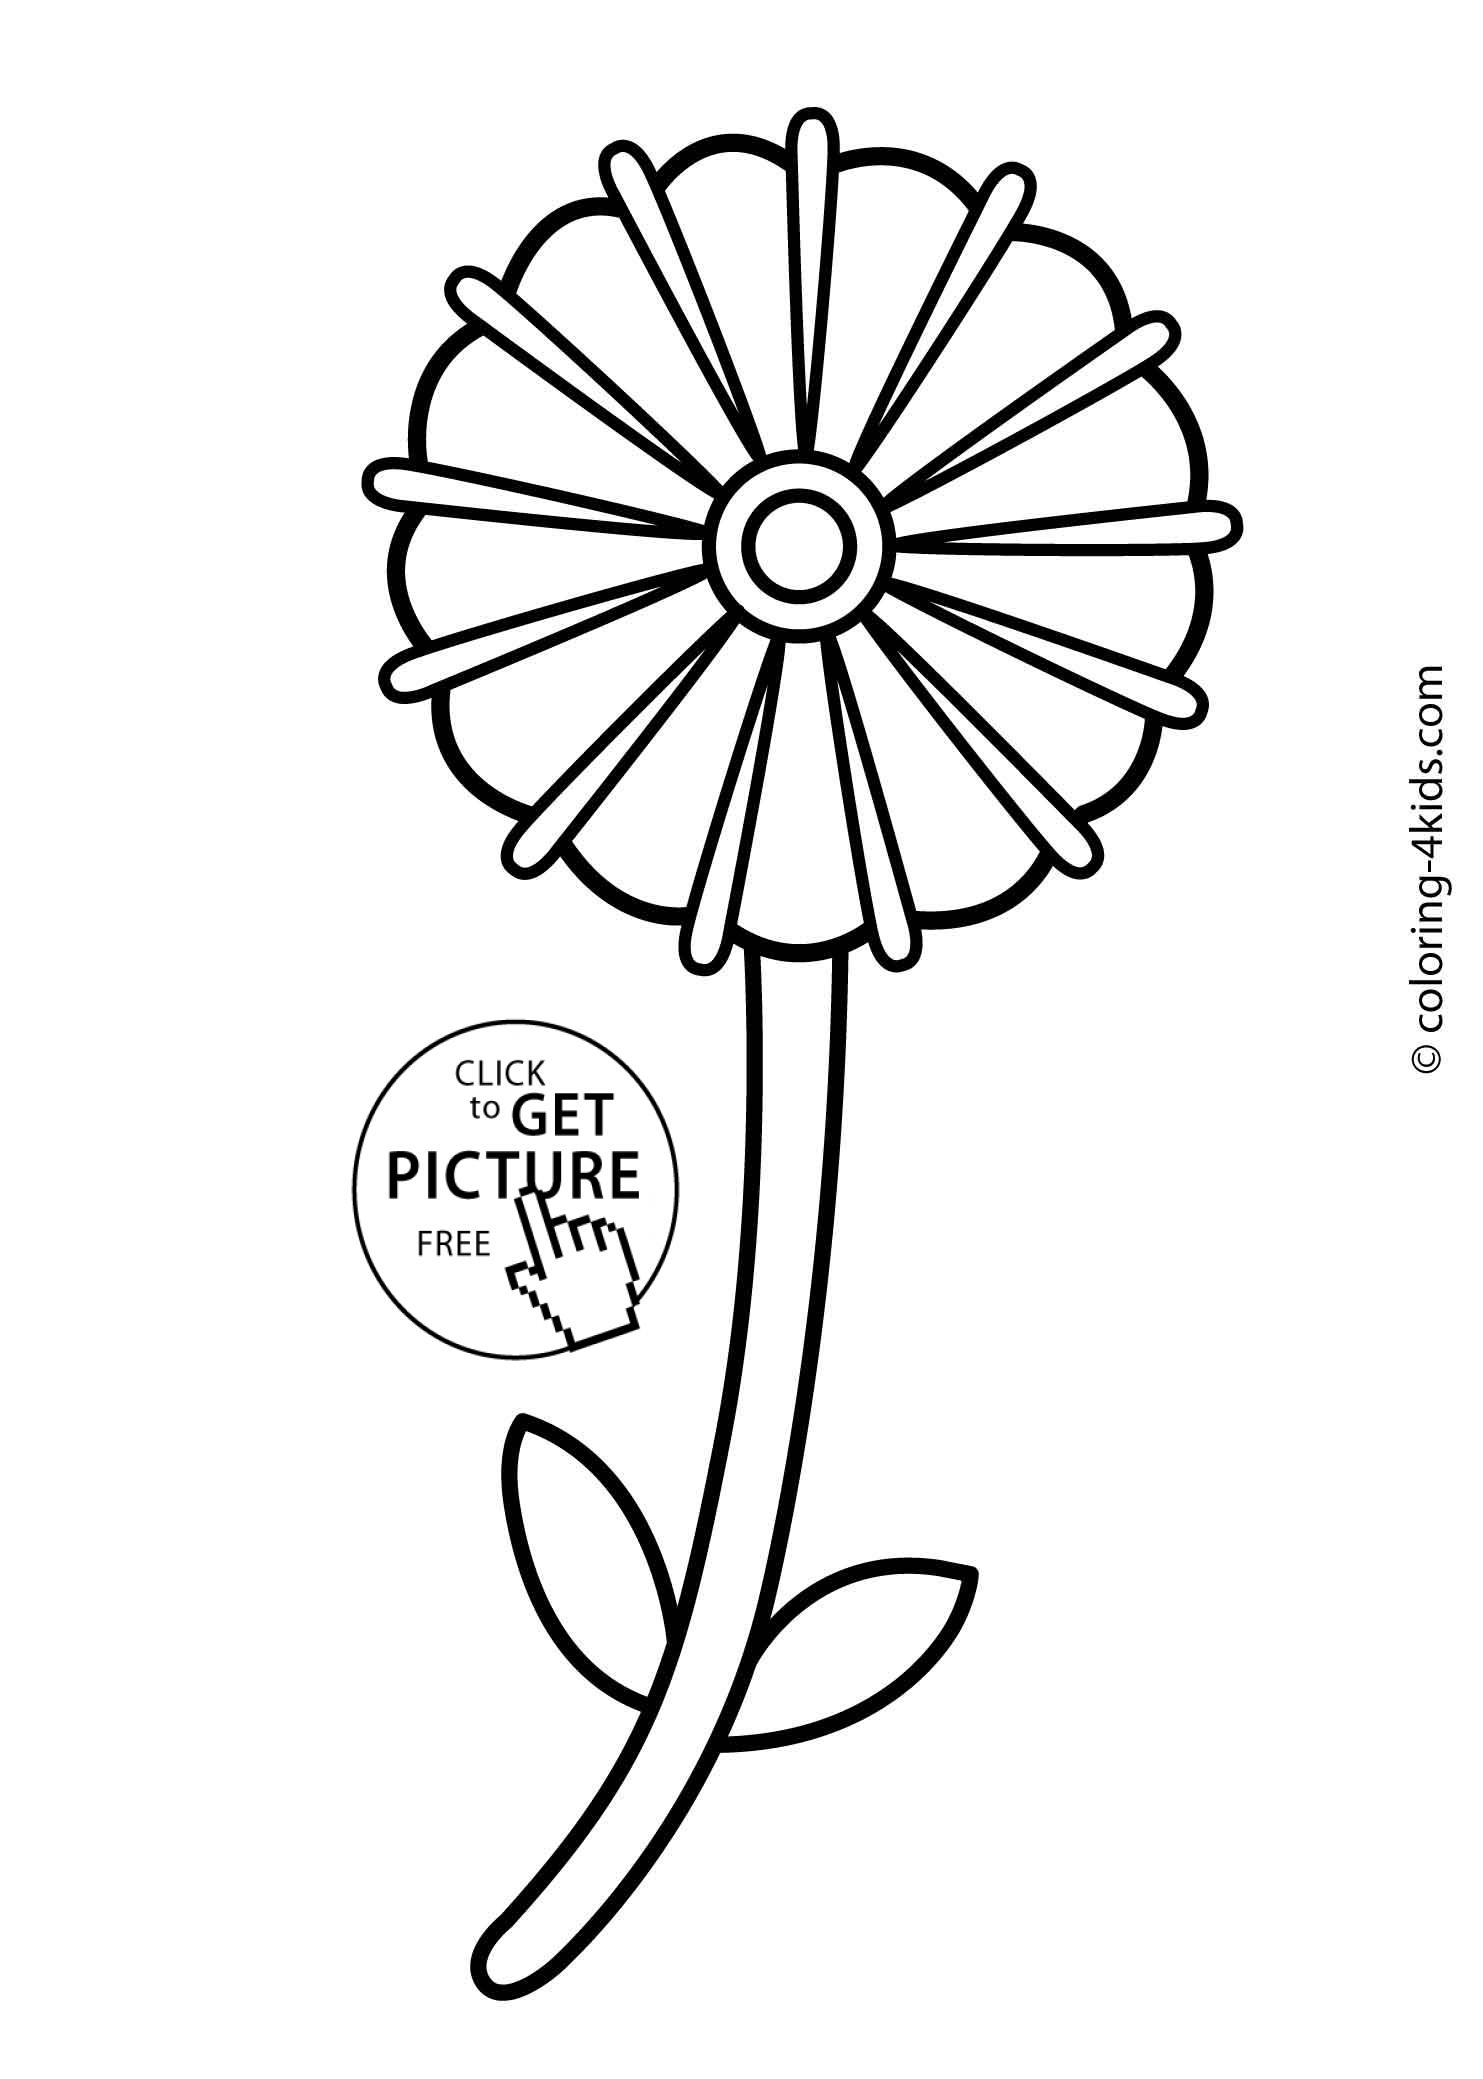 Flower coloring pages for kids, printable, 9